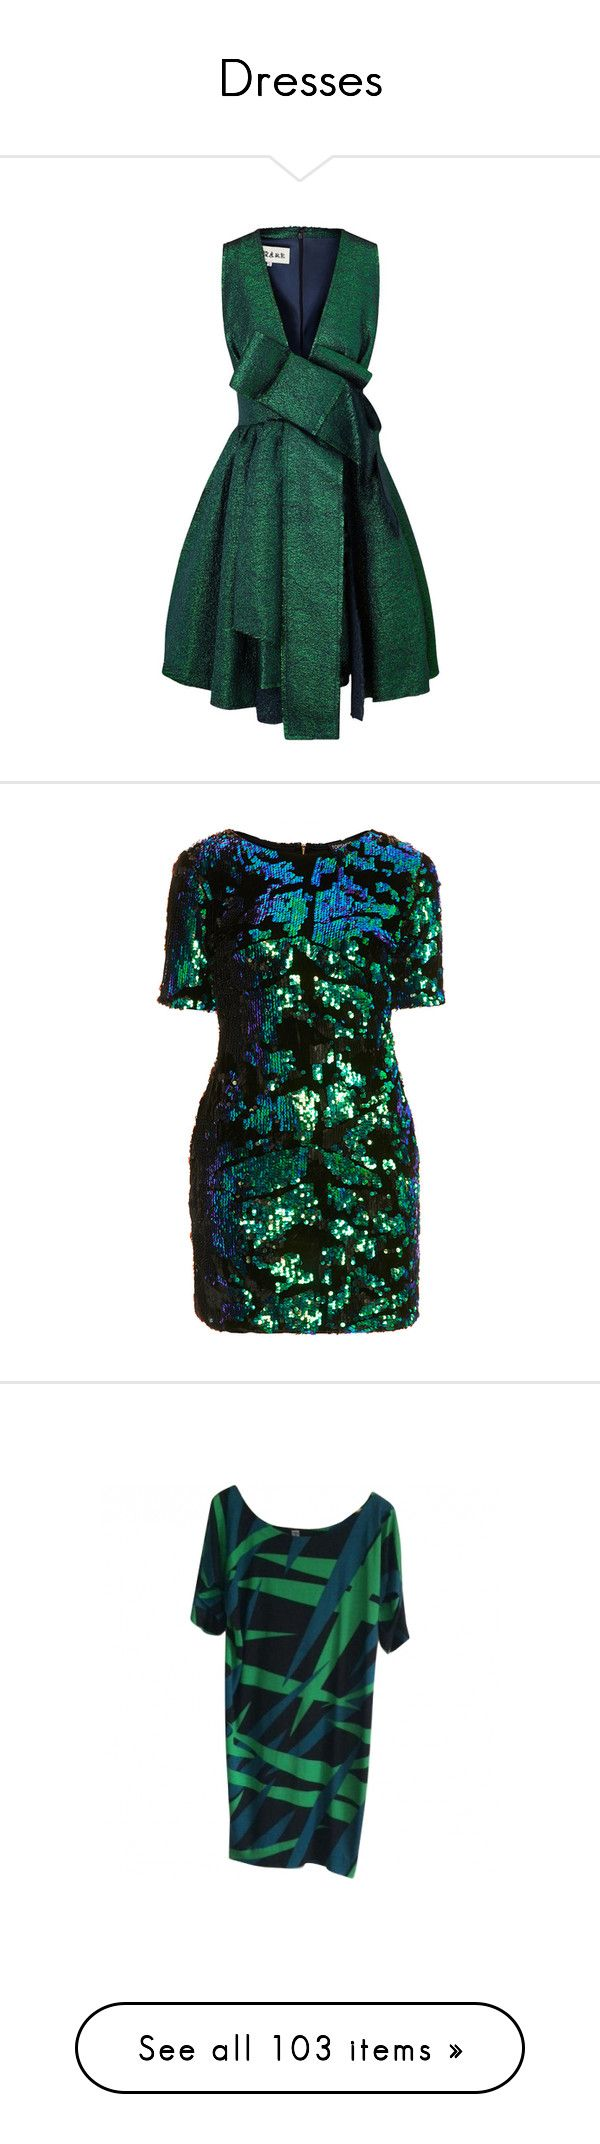 """""""Dresses"""" by kitti-takacs ❤ liked on Polyvore featuring dresses, short dresses, green, green sparkly dress, plunging v neck dress, mini dress, bow dress, topshop, vestidos and multi"""